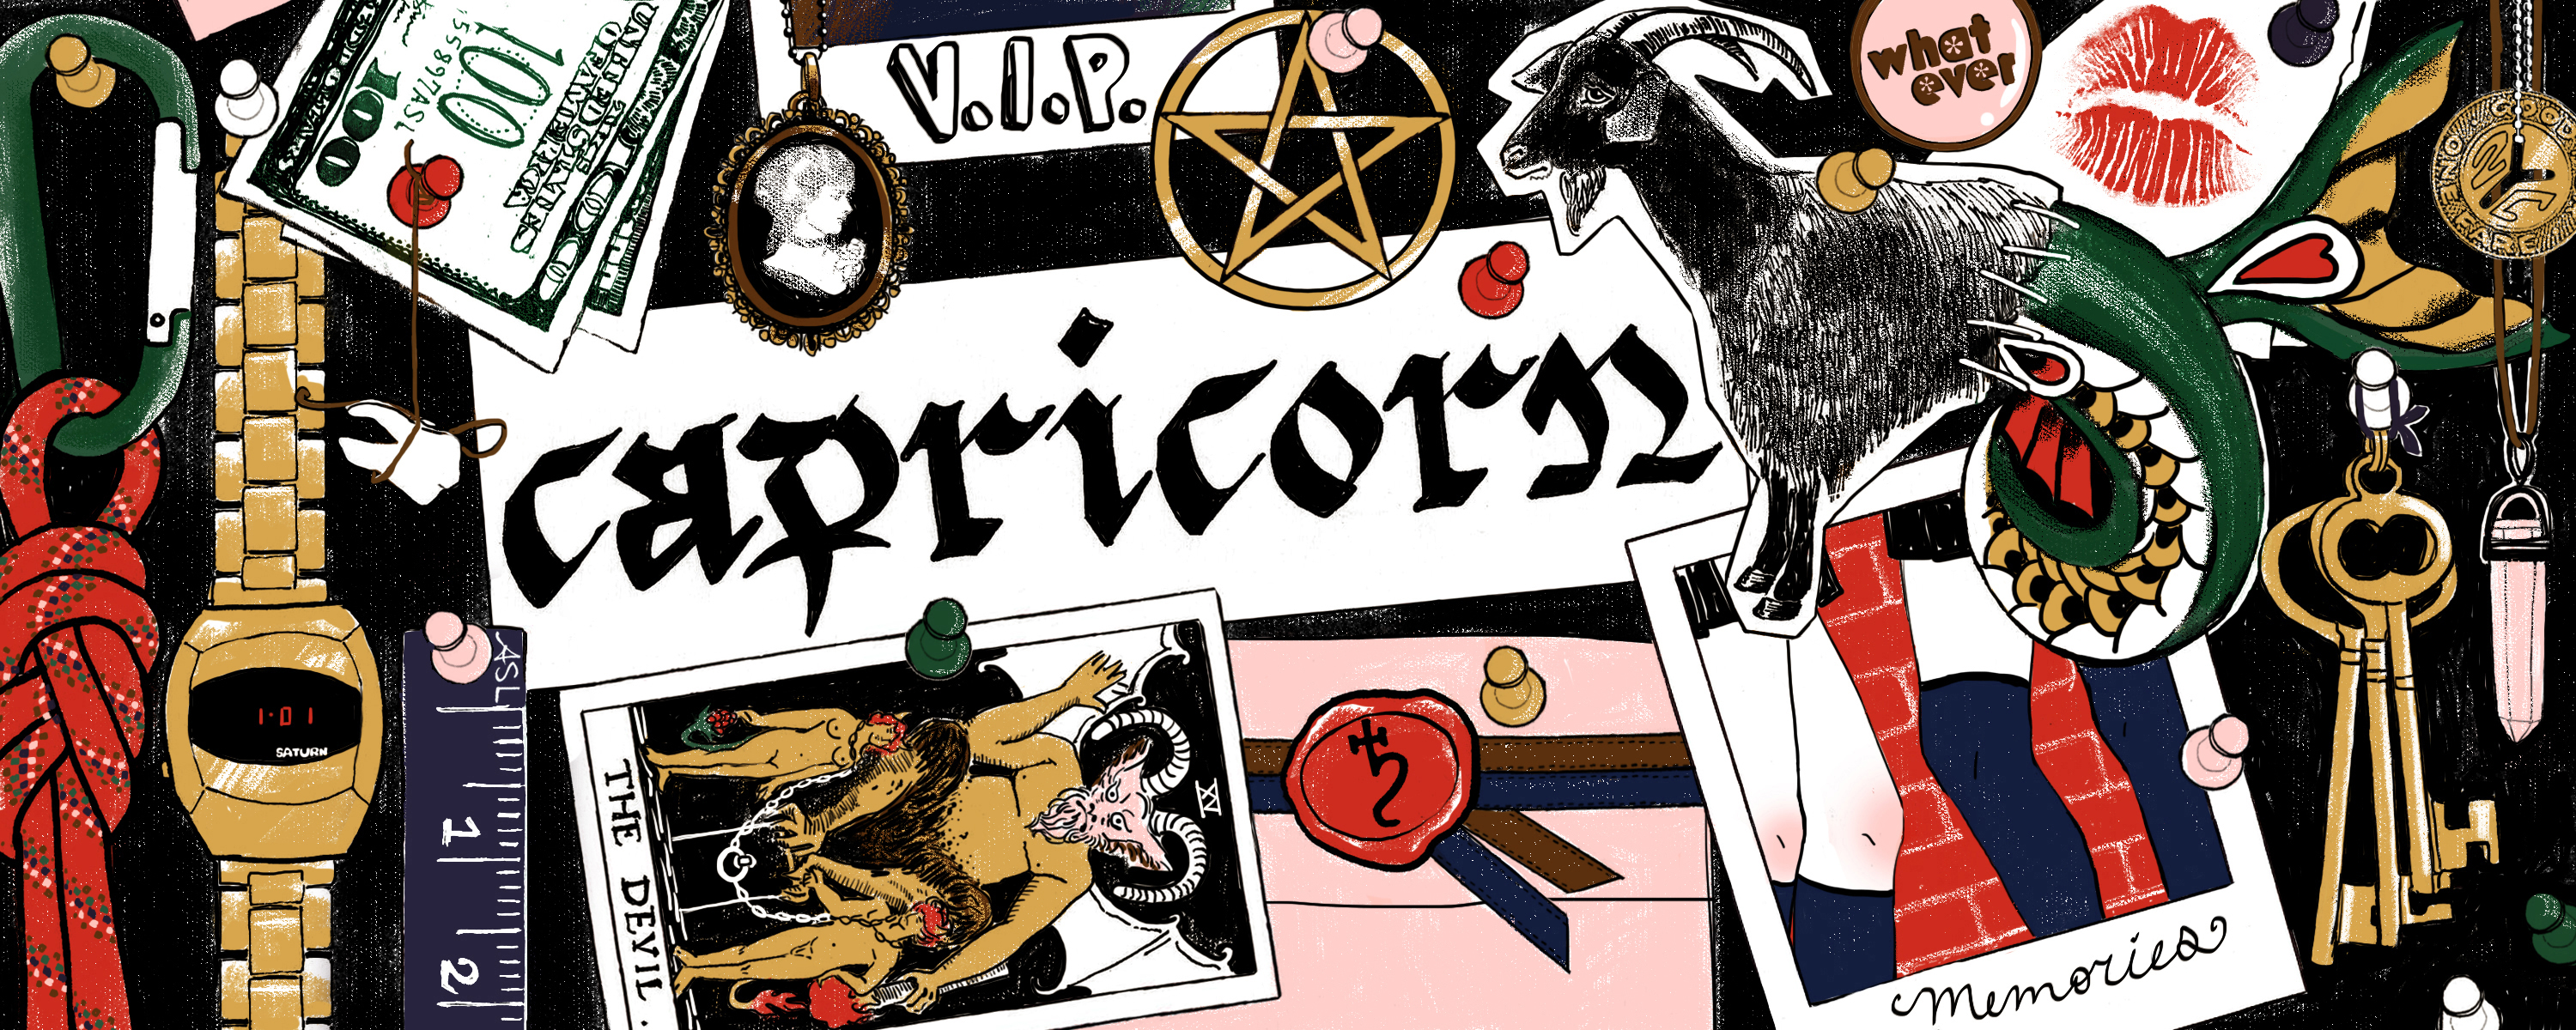 Monthly Horoscope: Capricorn, July 2019 - VICE